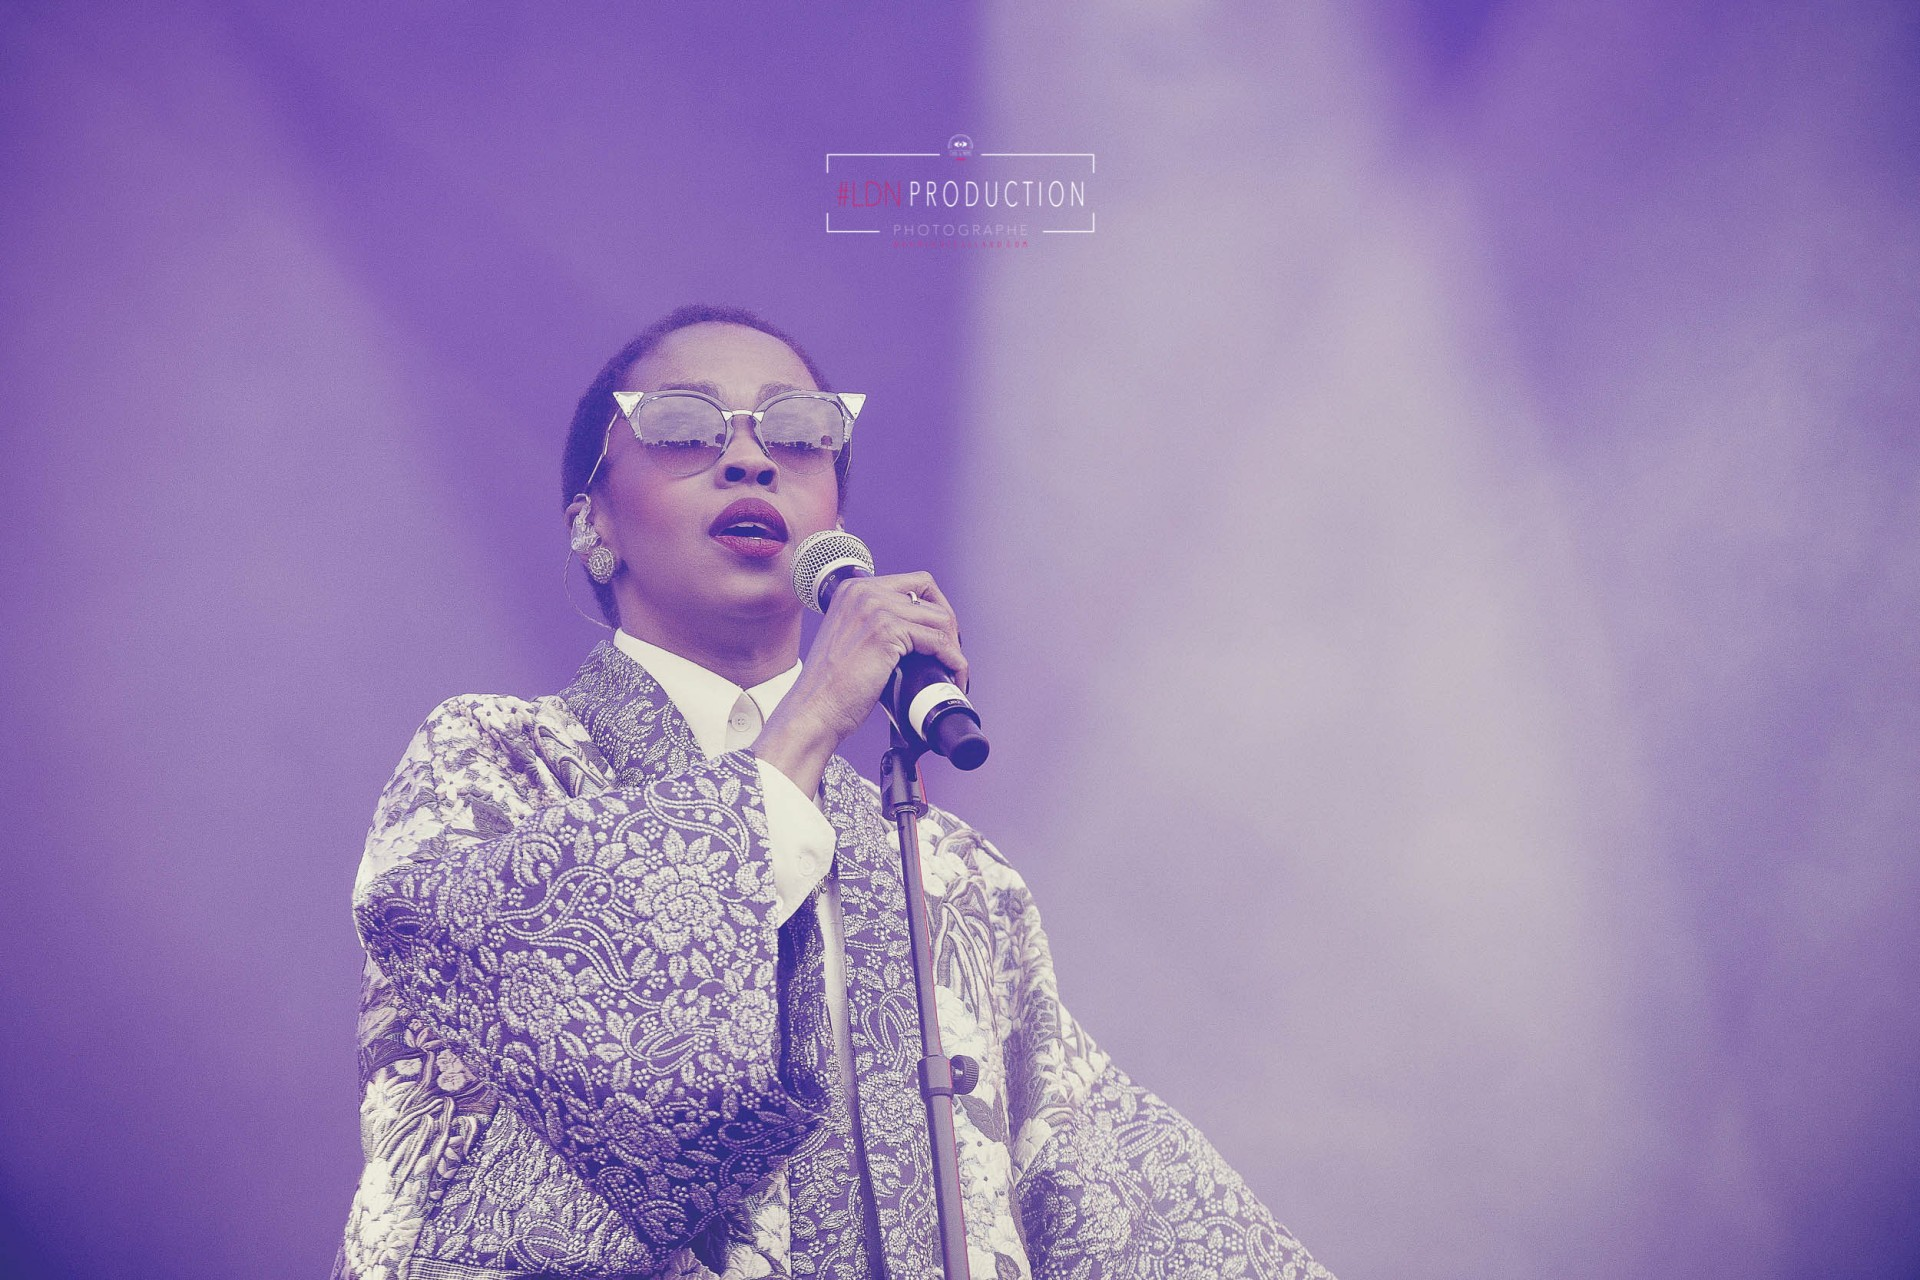 photo-ms-lauryn-hill-fugees-hip-hop-usa-soul-festival-papillons-de-nuit-normandie-noemie-vieillard-19